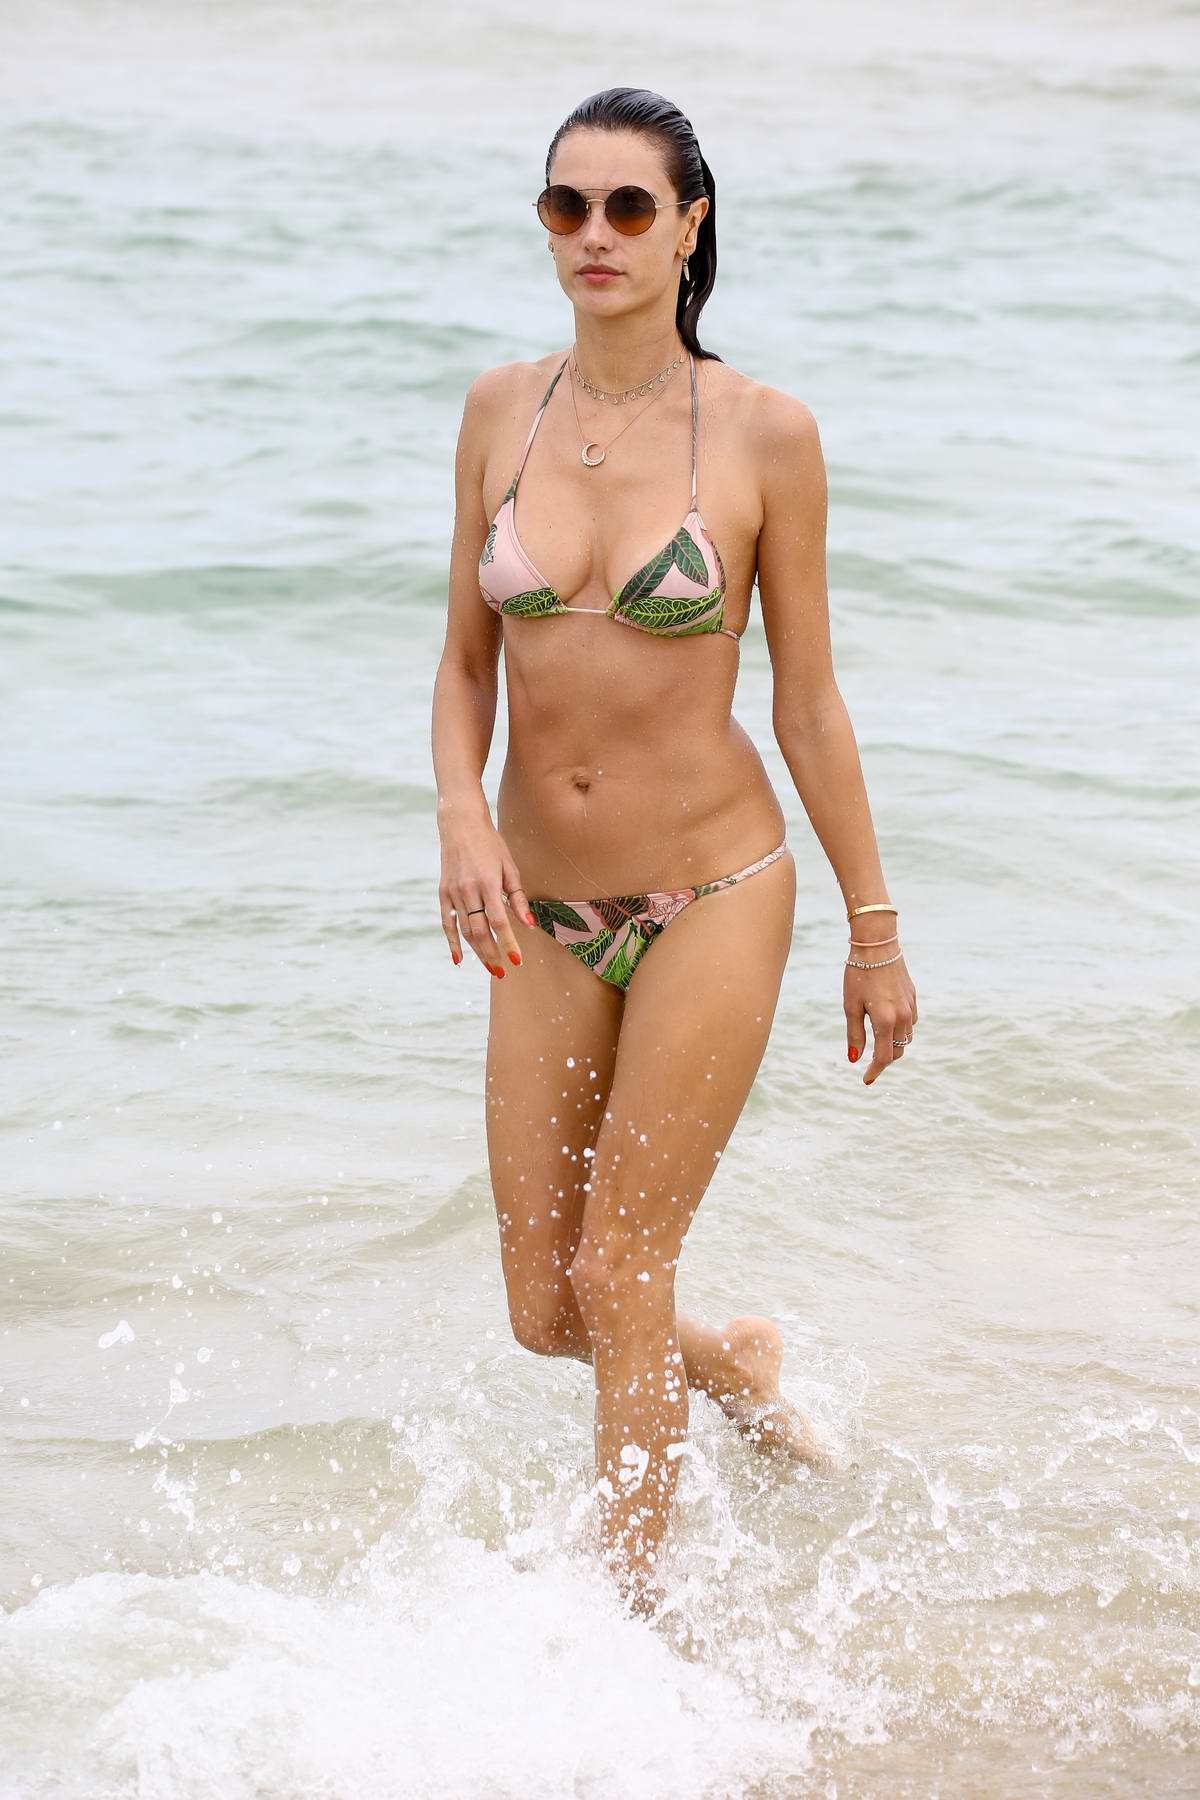 Alessandra Ambrosio wears a pink string bikini as she continues her vacation at the beach in Florianopolis, Brazil